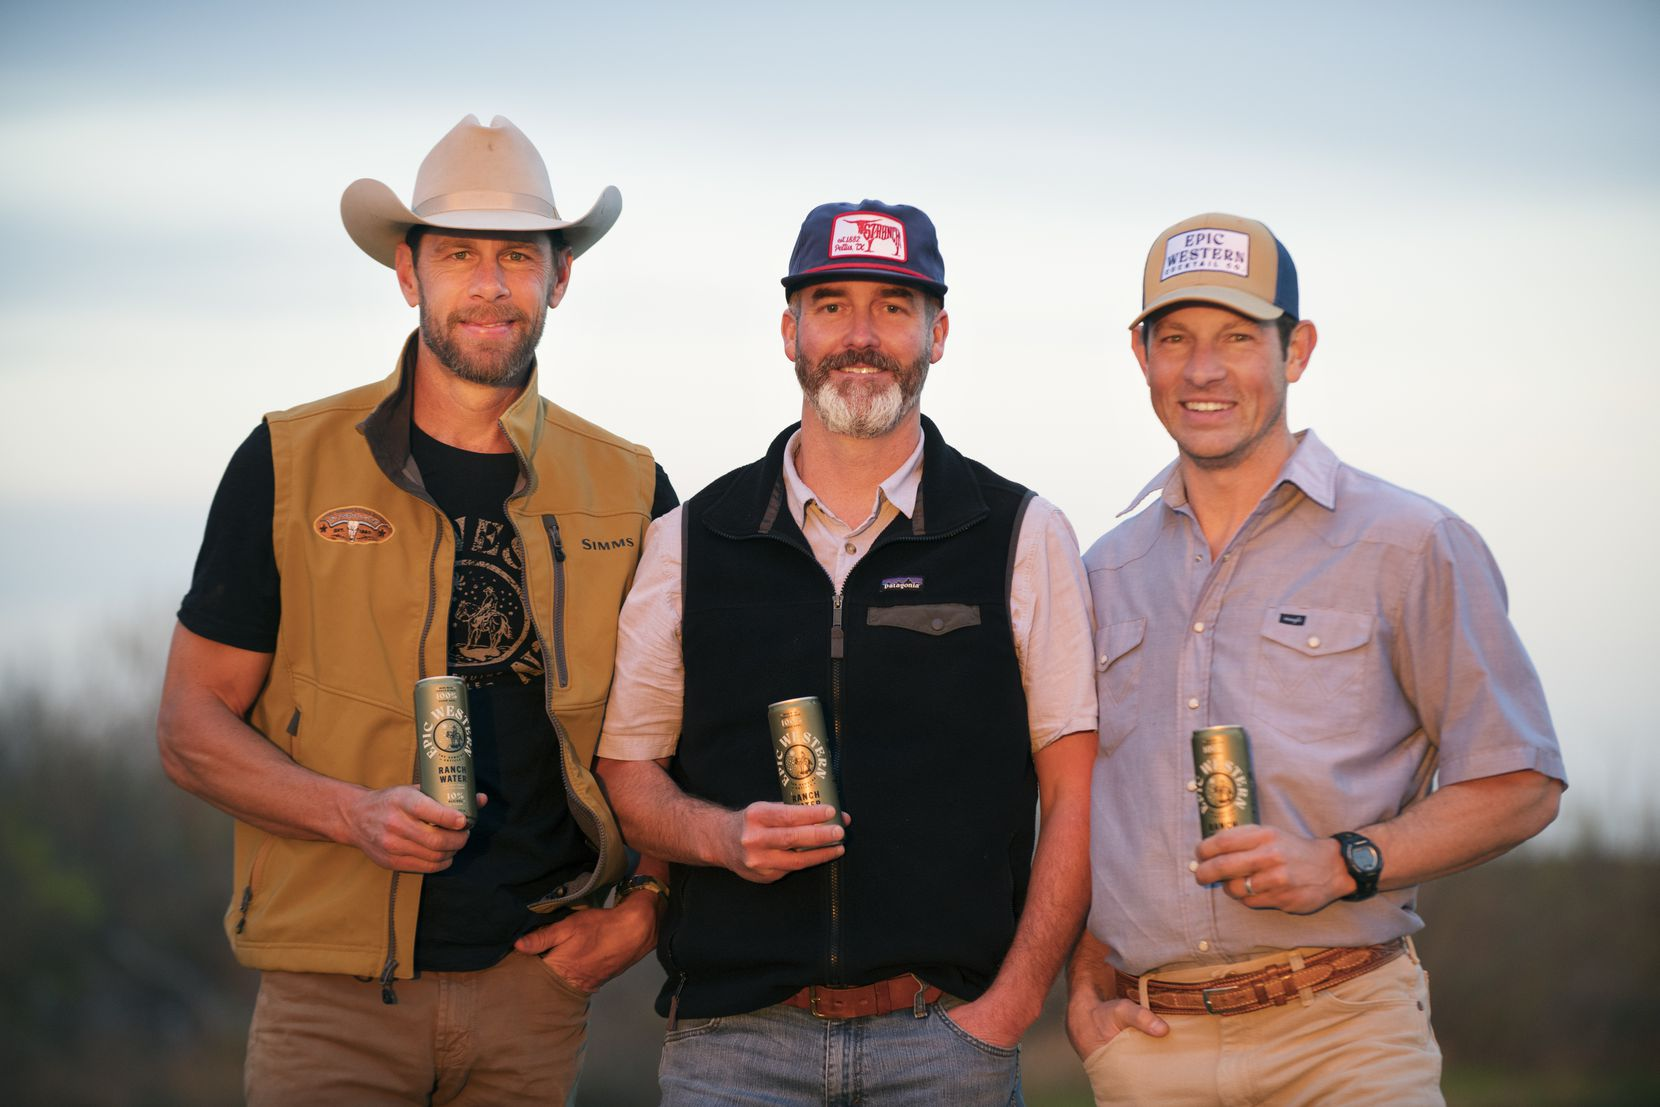 Adam Love, Royce Itschner, and Dub Sutherland launched Epic Western ranch water.